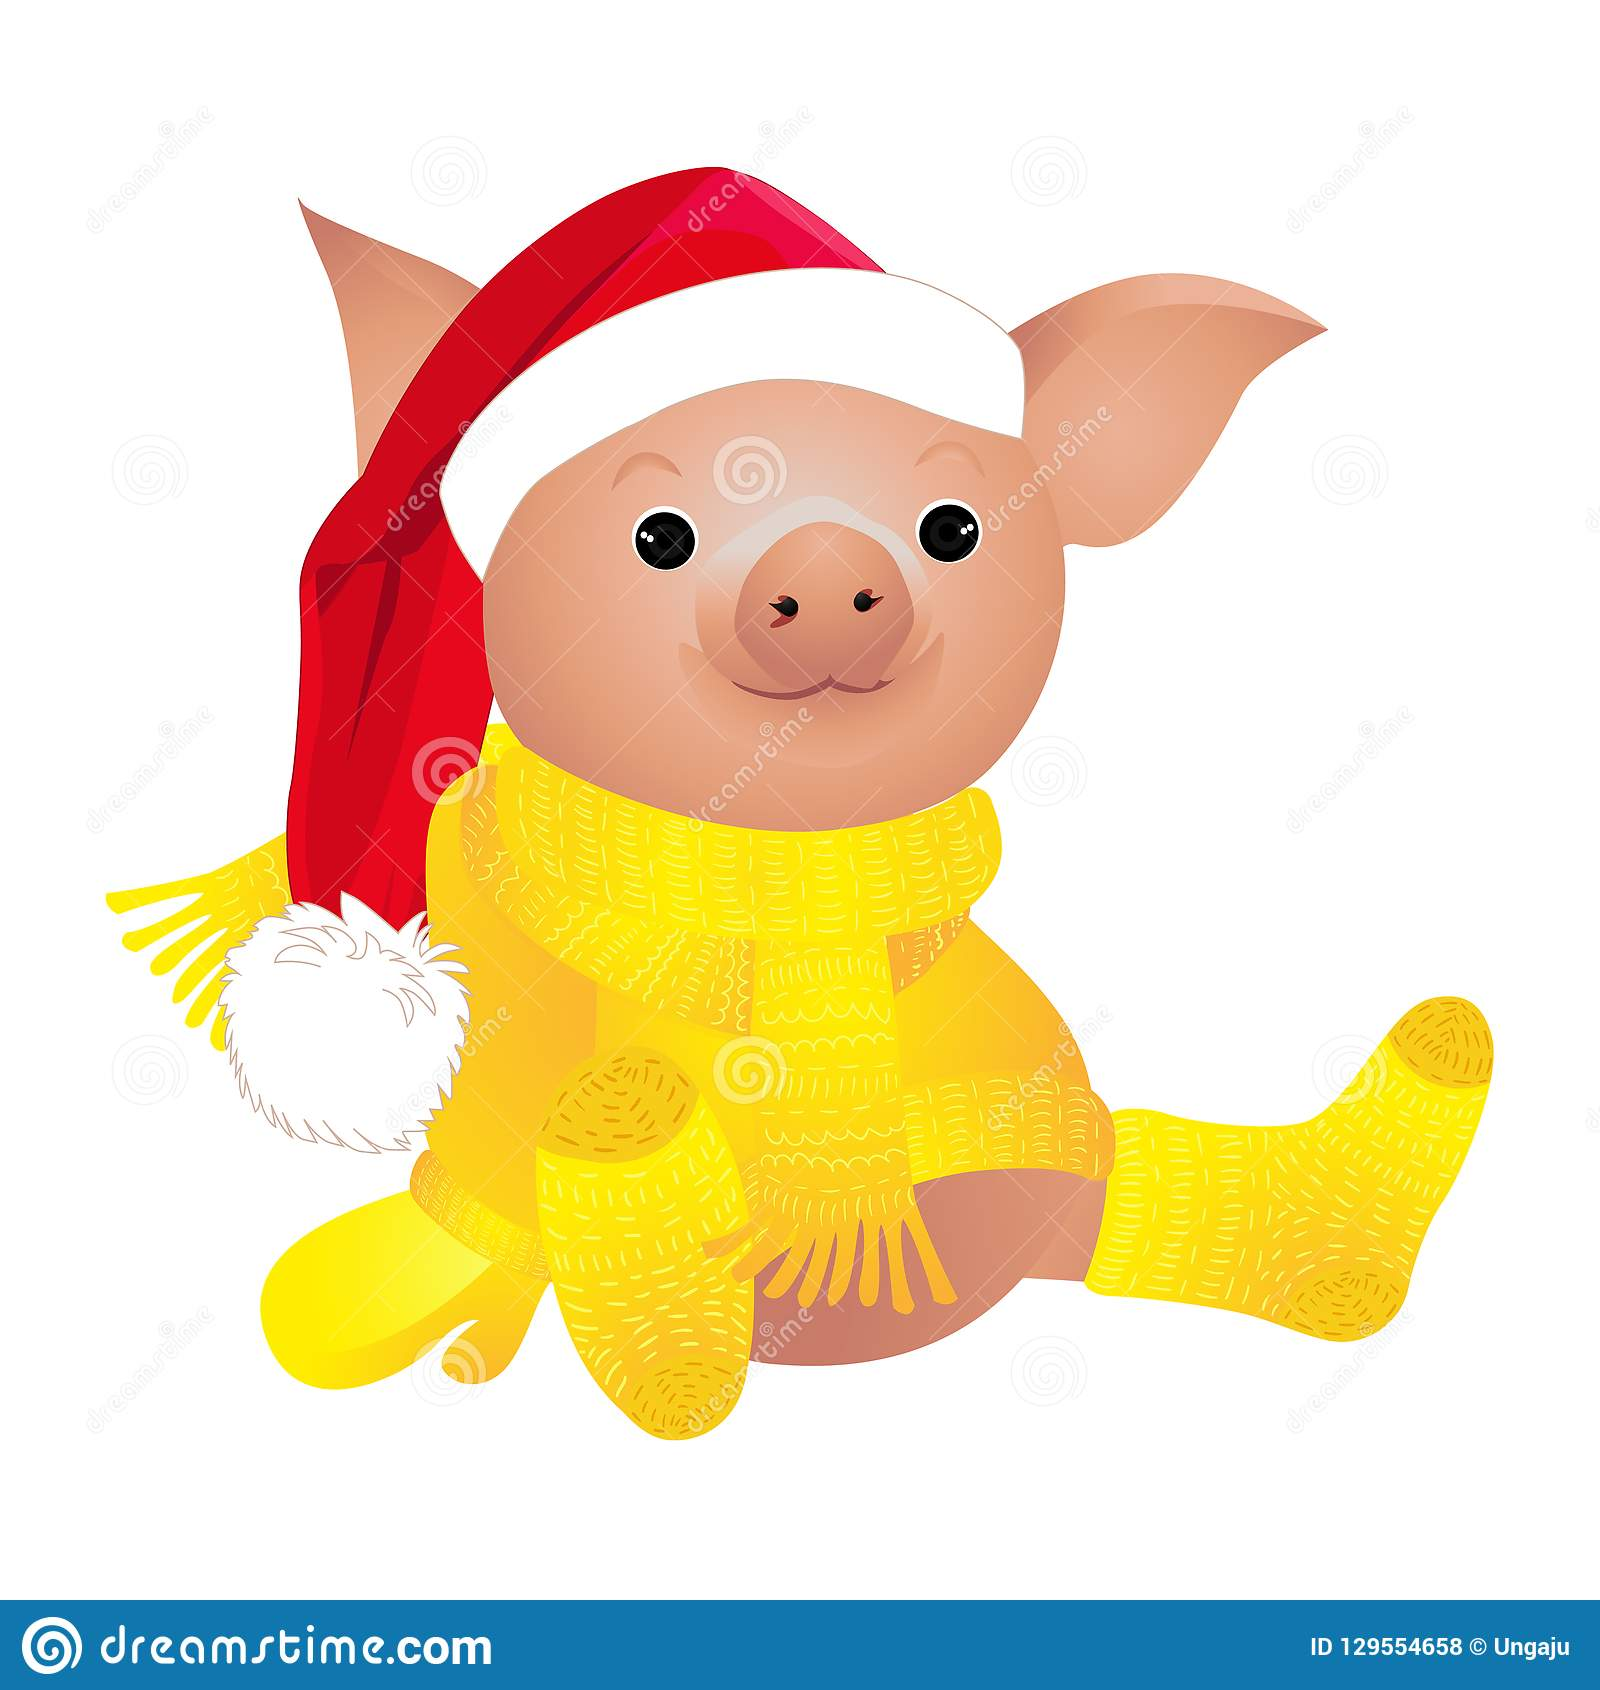 Pig in sweater. 2019 Chinese New Year of the Pig. Christmas greeting card. Isolated on a white background.